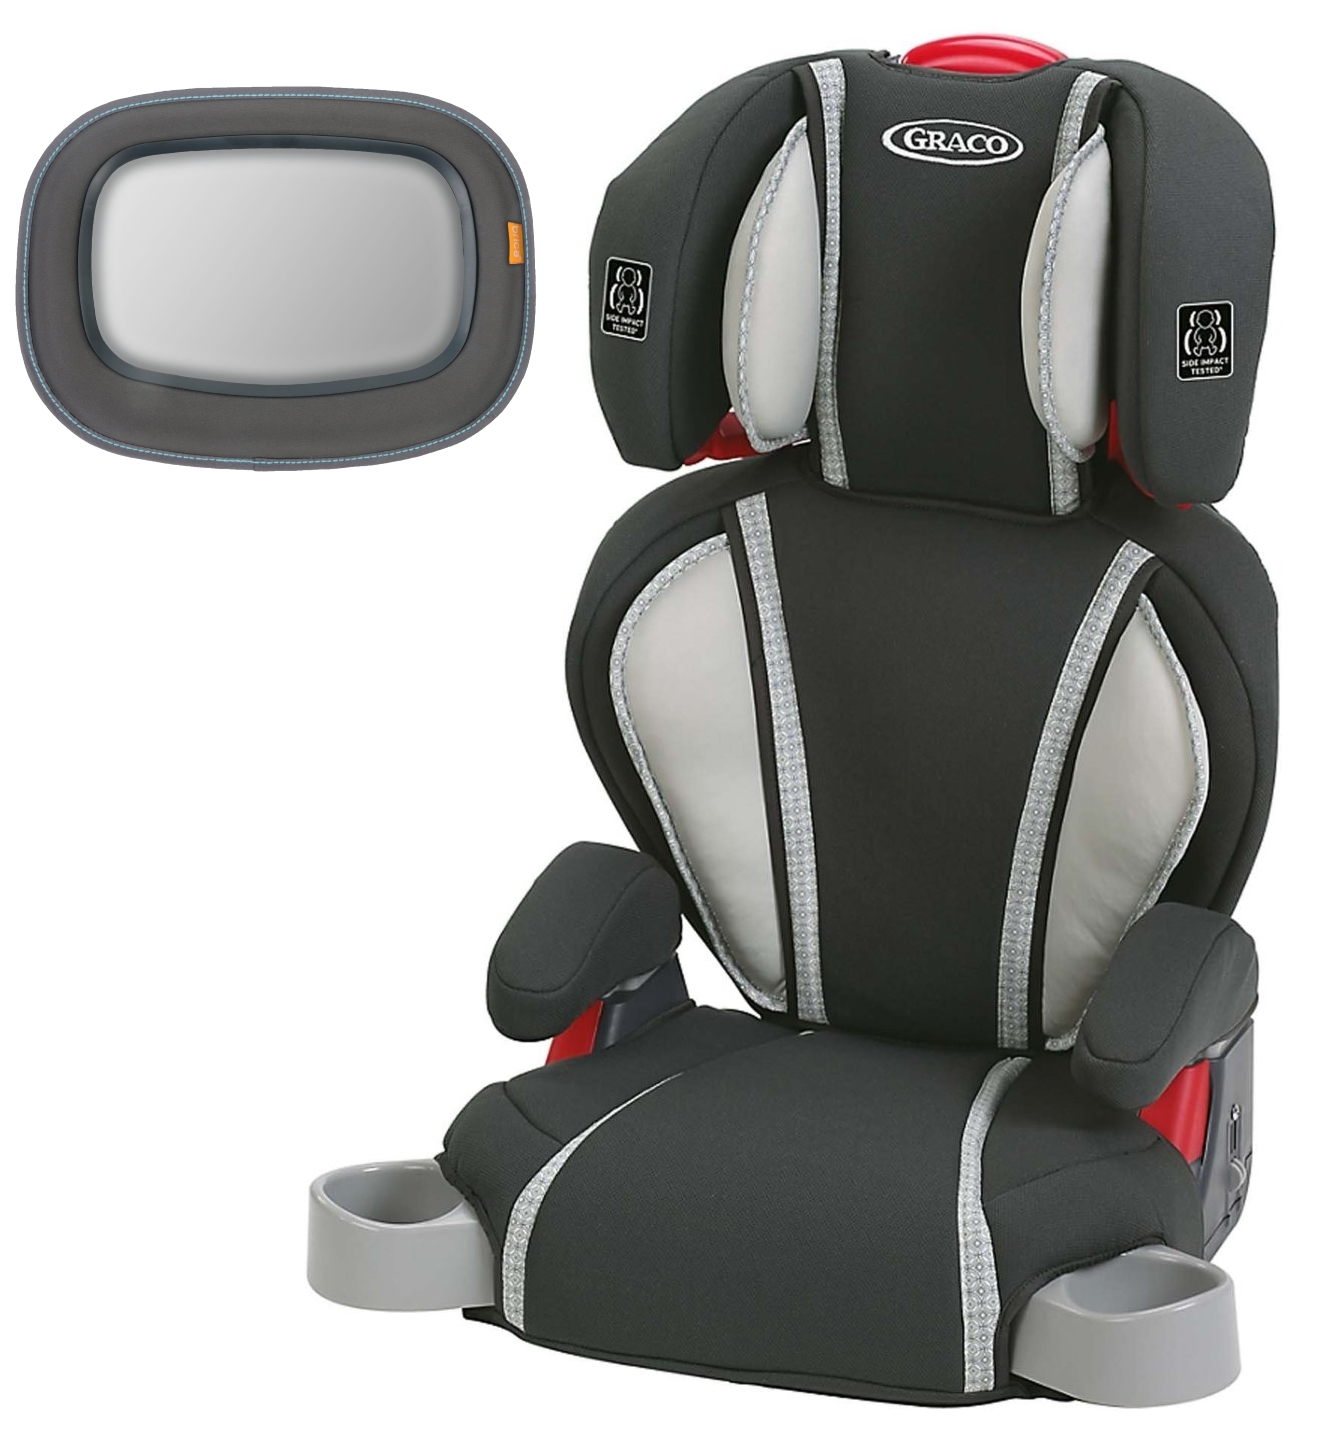 Graco Highback TurboBooster Booster Car Seat, Glacier with Baby In-Sight Mirror